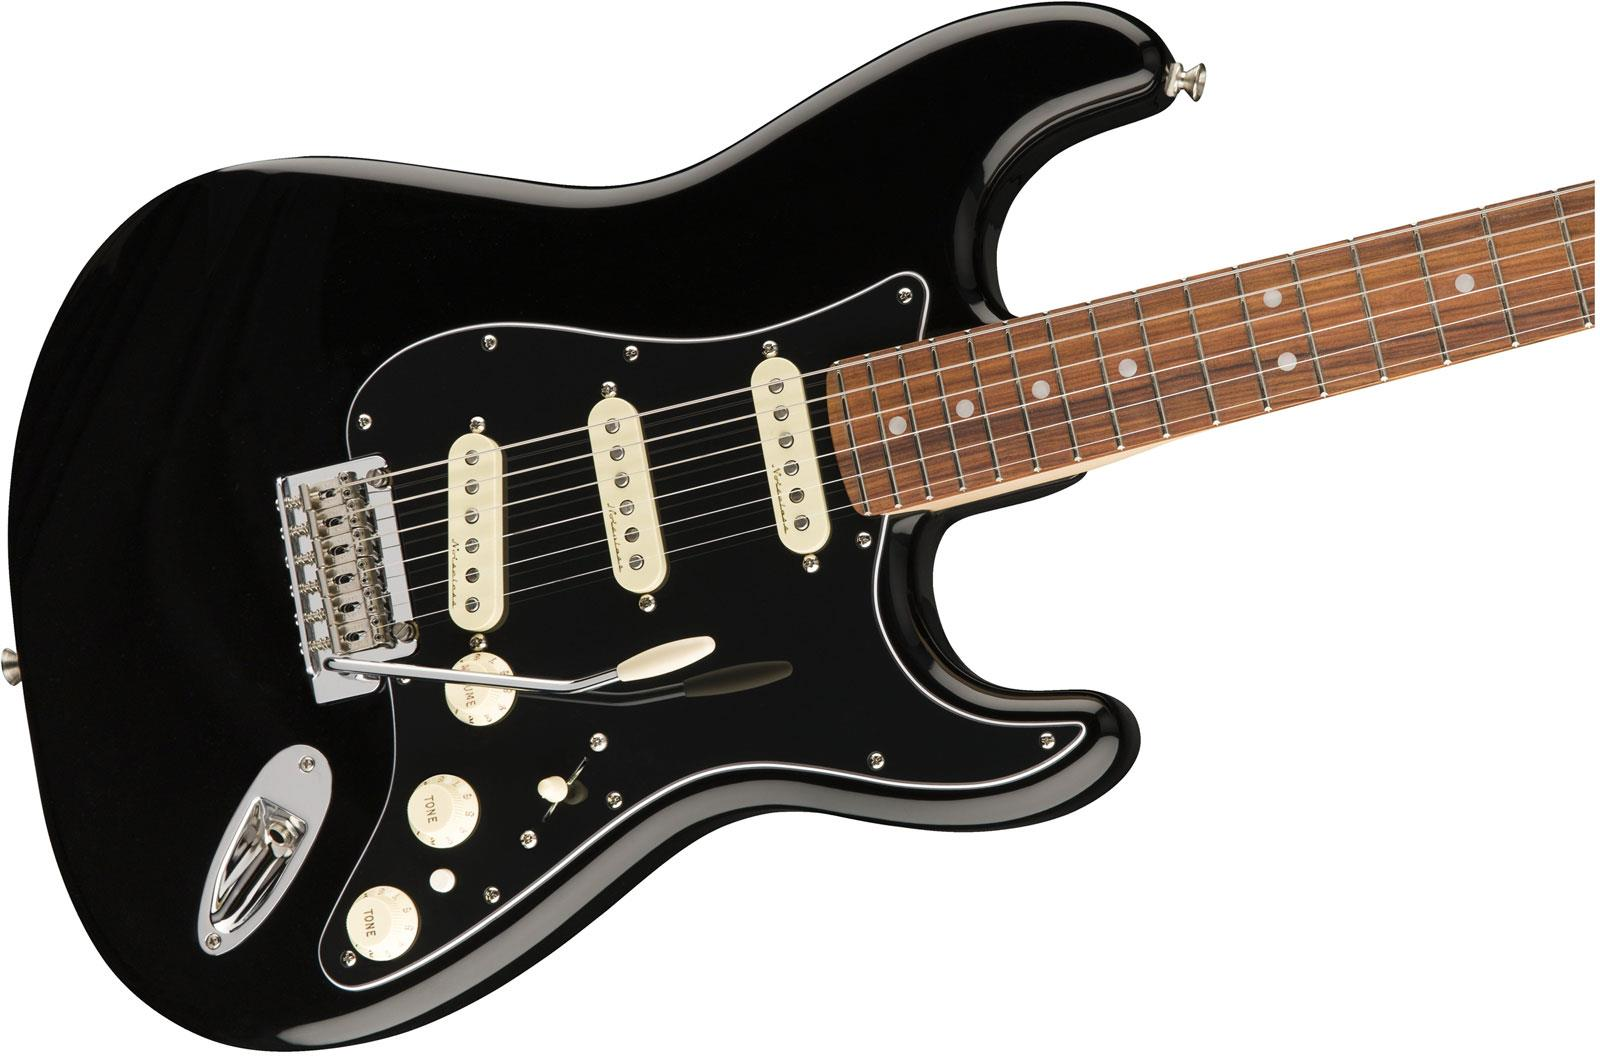 hight resolution of fender deluxe players strat wiring diagram fender strat fender american deluxe strat wiring diagram